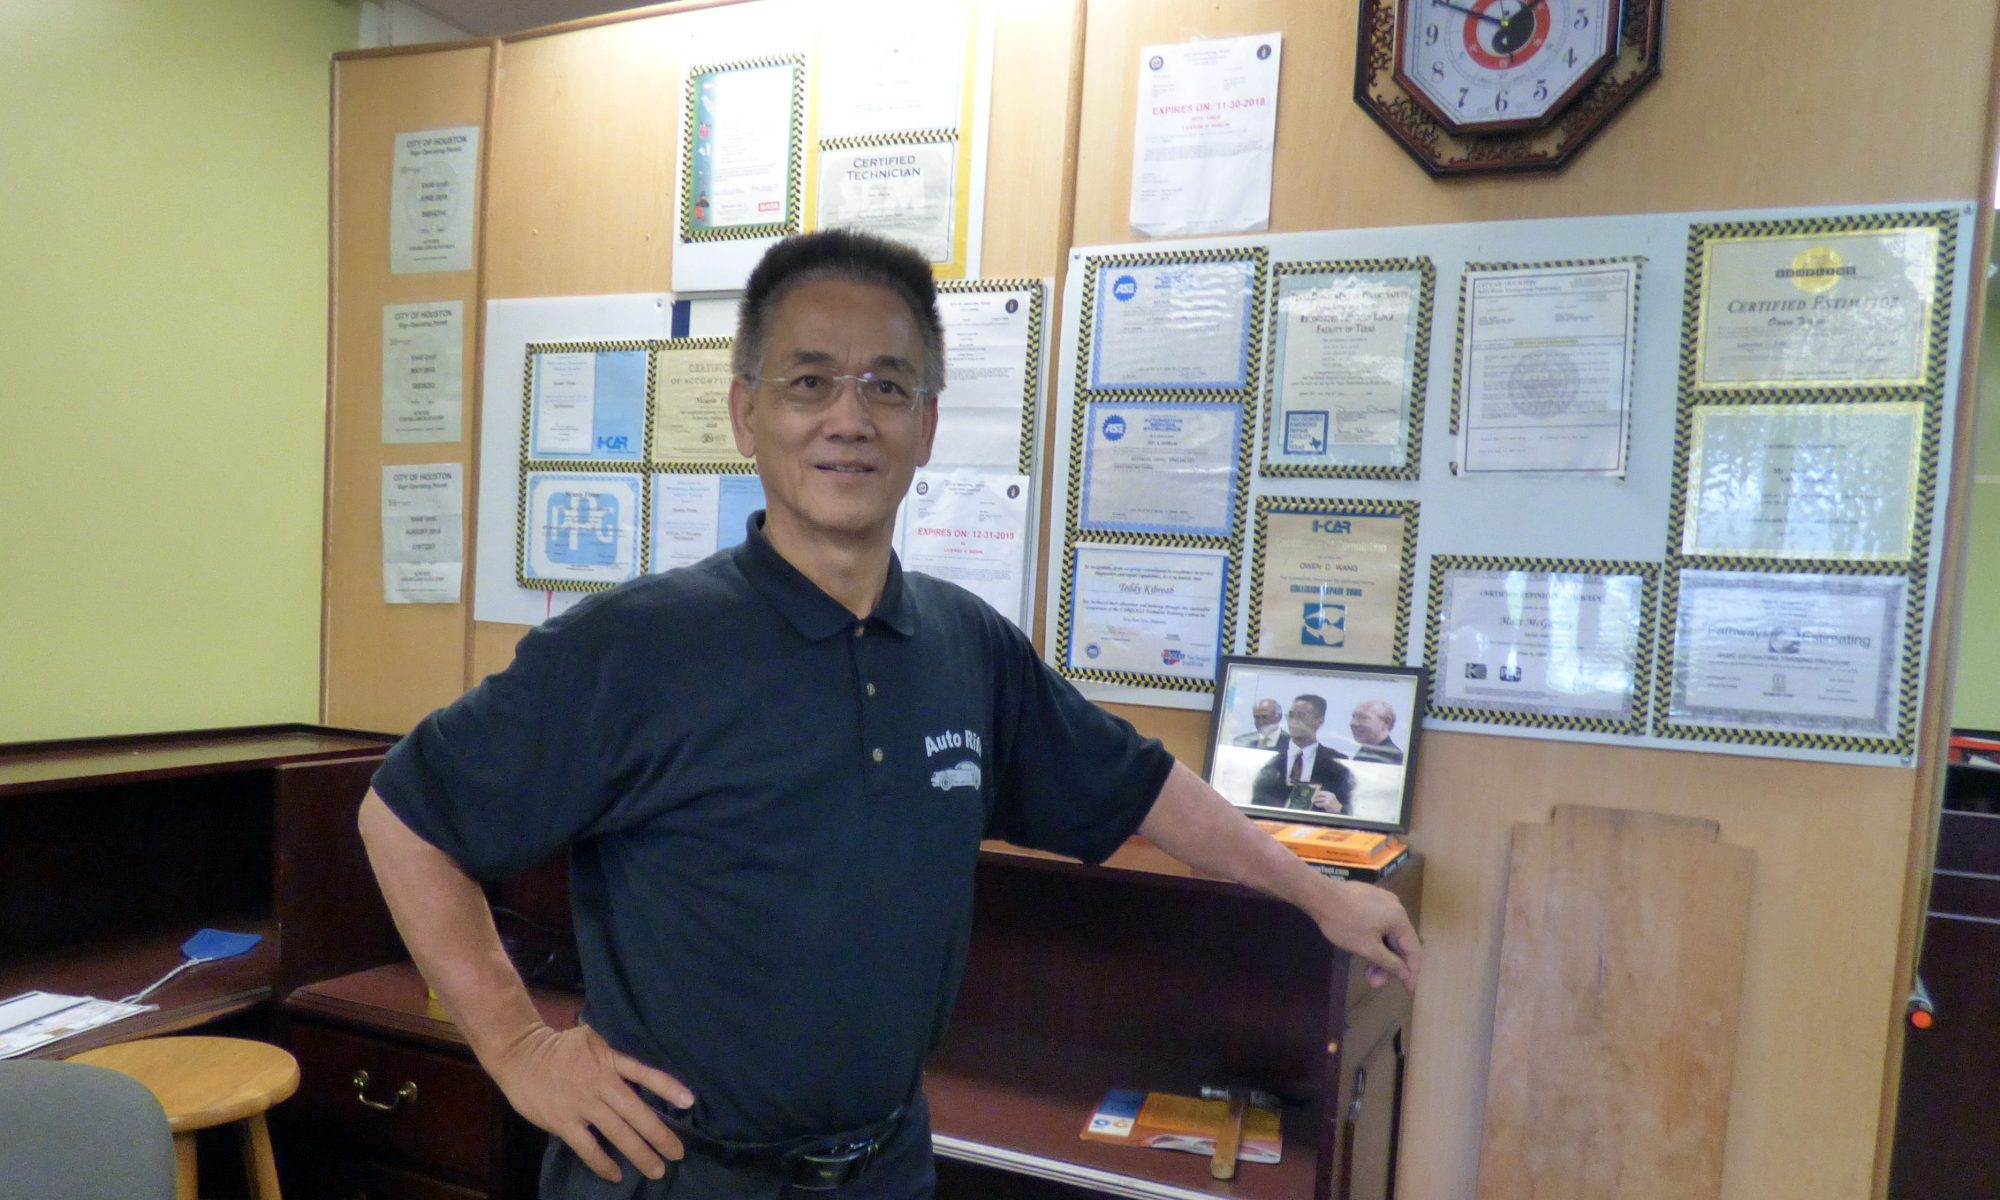 Owner - Owen Wang in front of certifications